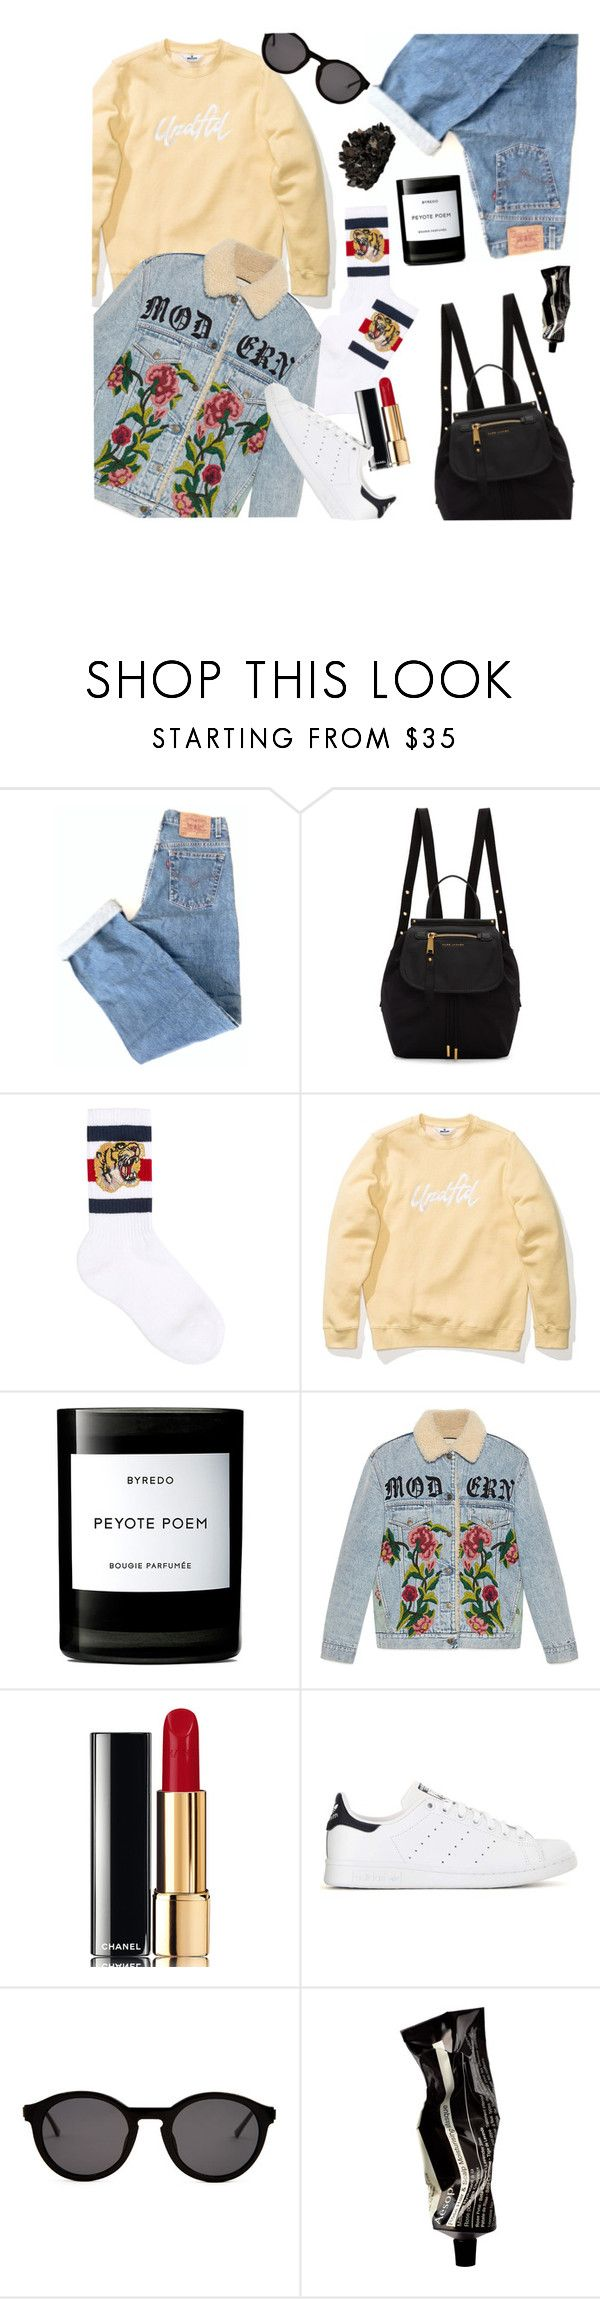 """""""Comfortable Everday Streetstyle!"""" by pricklypear ❤ liked on Polyvore featuring Levi's, Marc Jacobs, Gucci, Byredo, Chanel, adidas, Thierry Lasry, Aesop, McCoy Design and vintage"""